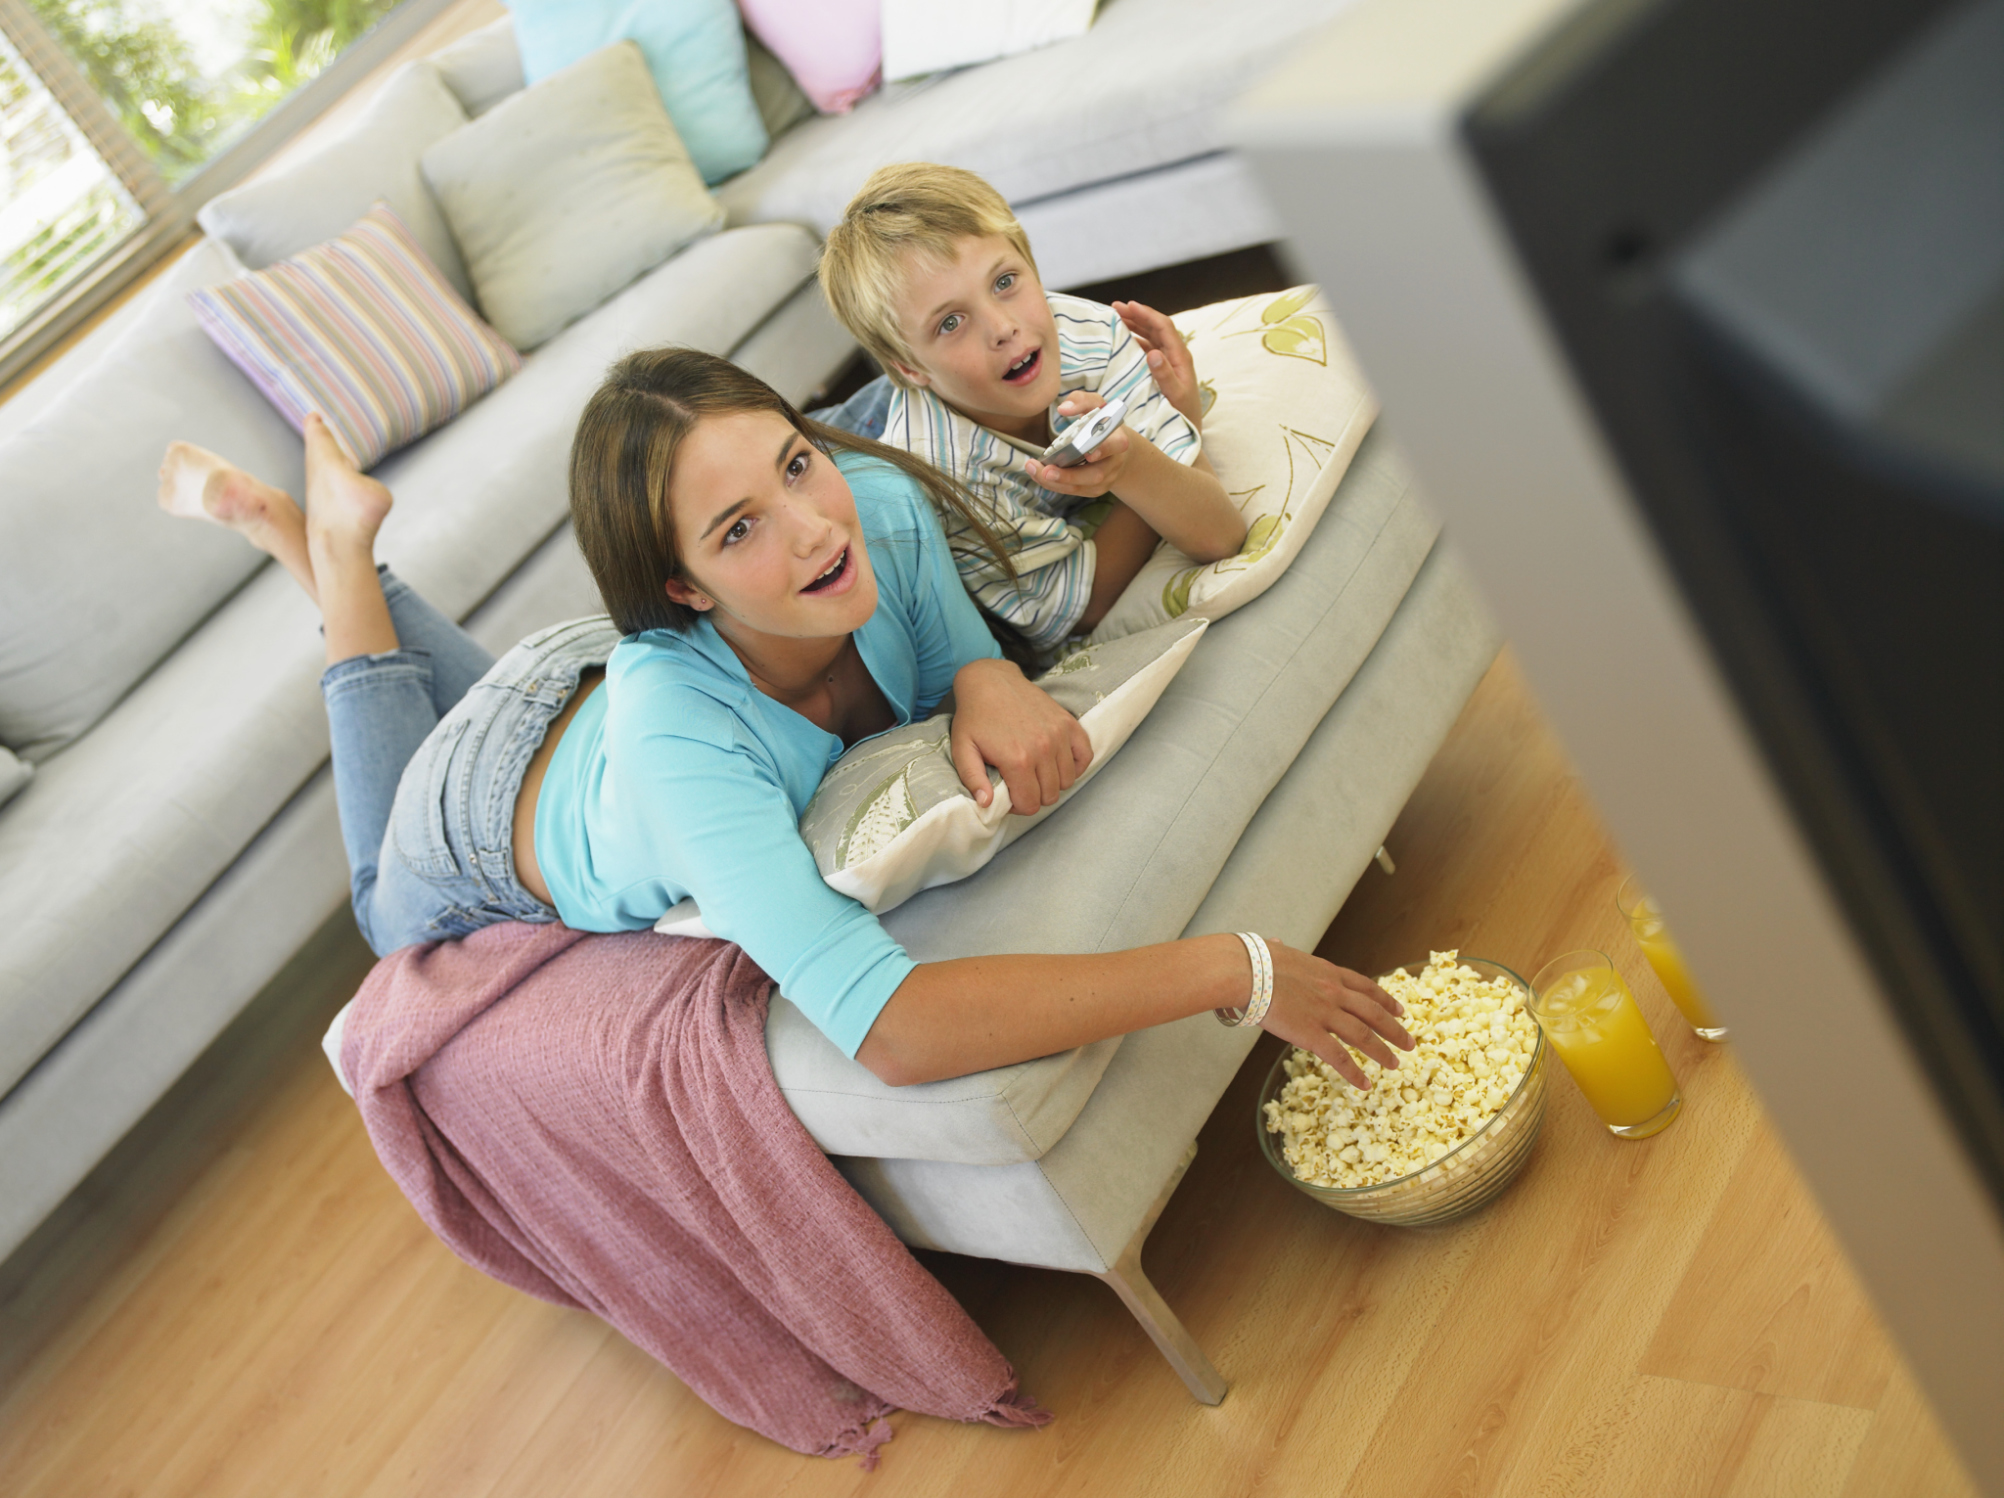 Study: An hour of TV a day can lead to kids' weight gain